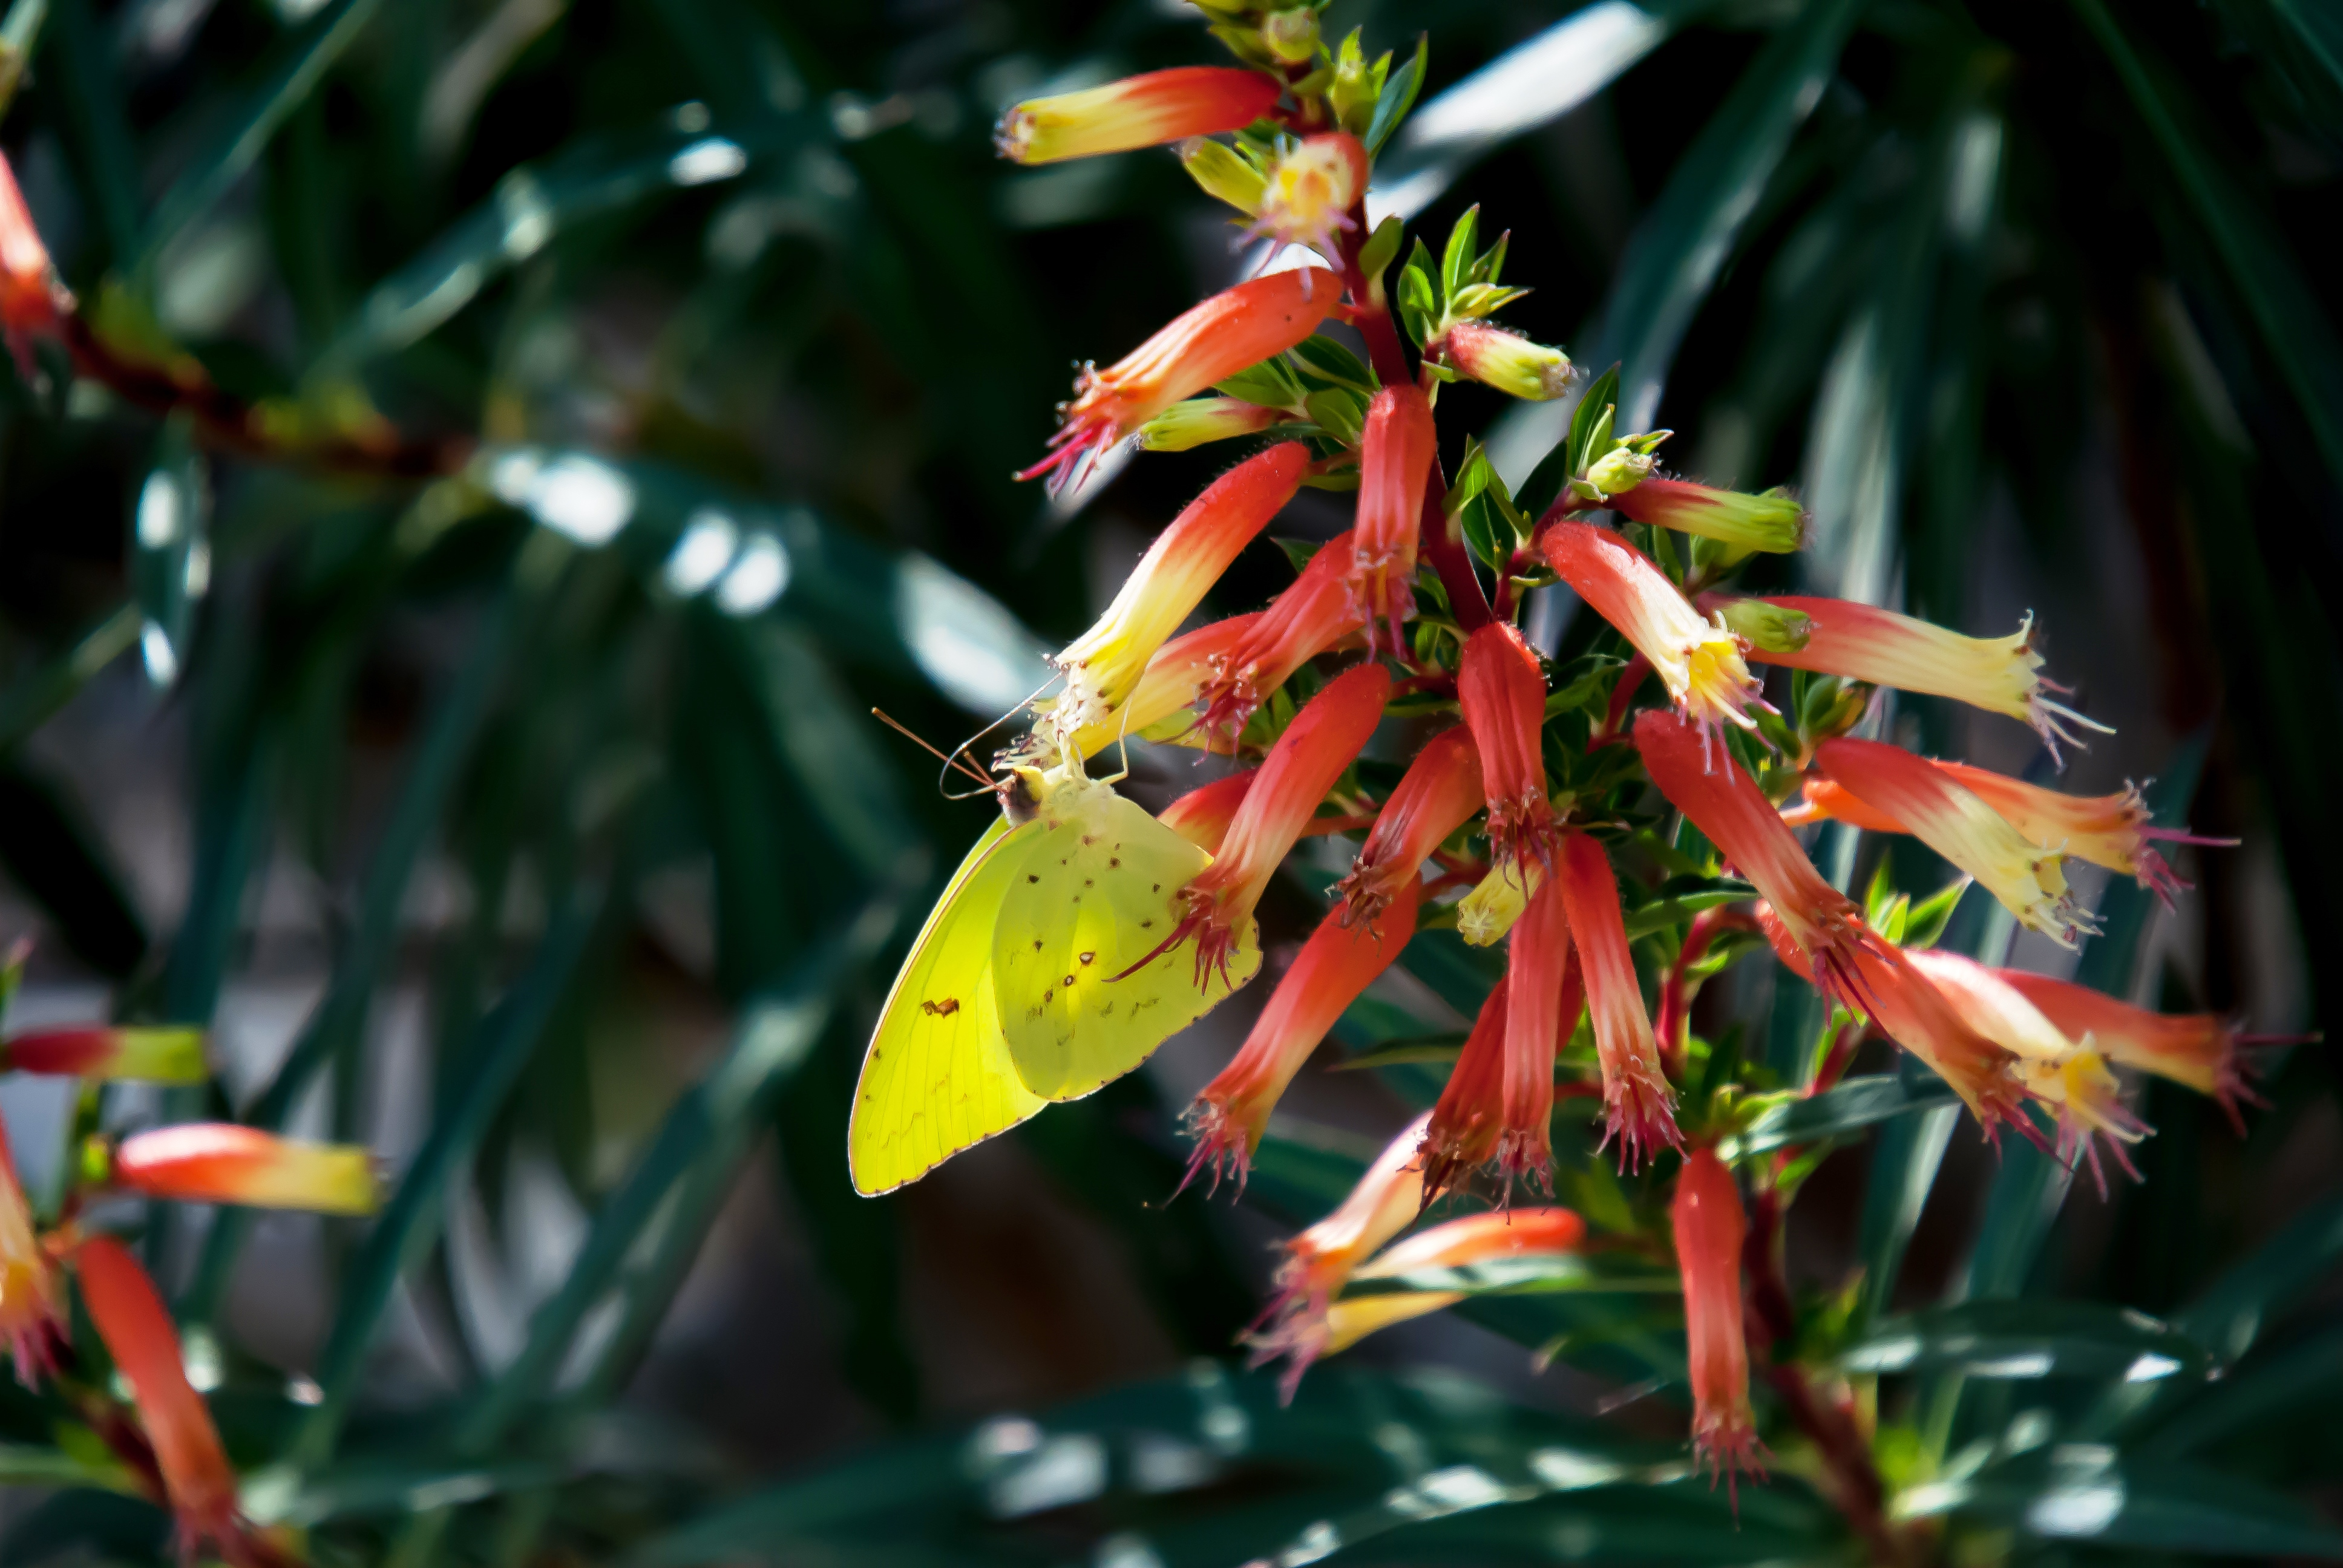 'Candy Corn' cuphea works well with other hummingbird plants, like firebush and 'Gold Star' esperanza.